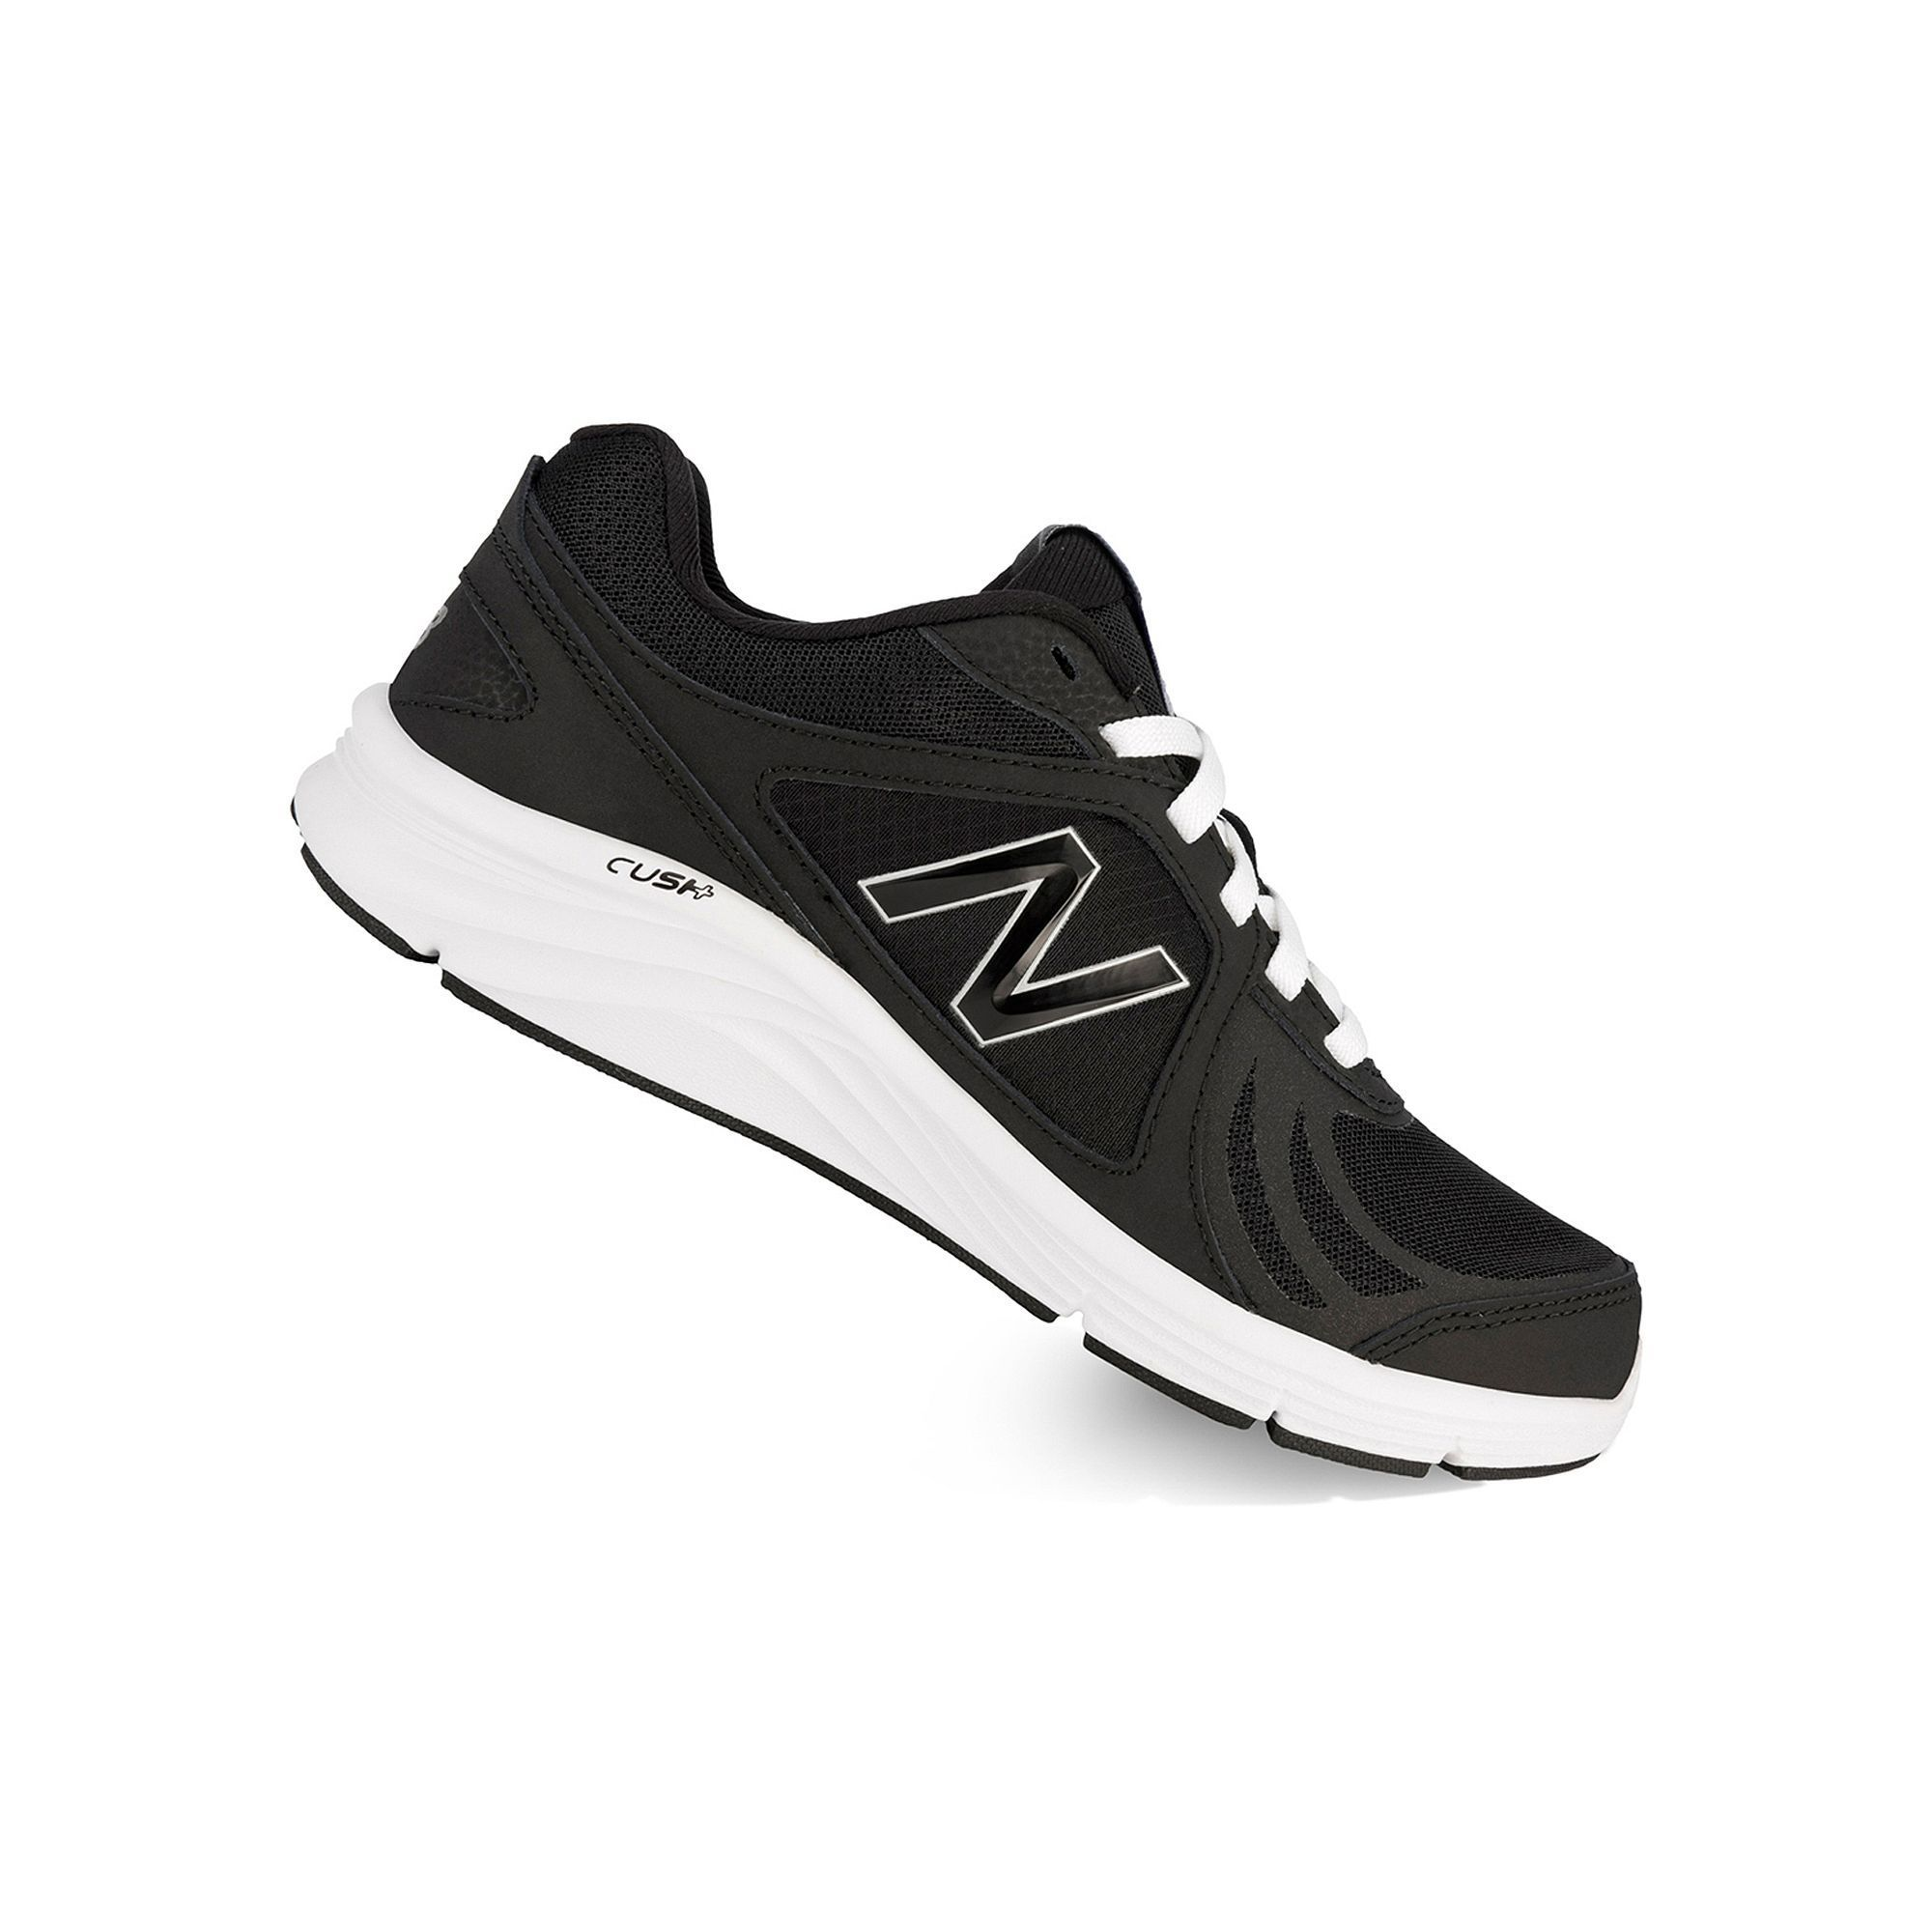 plus récent fd794 15ff4 New Balance 496 Cush+ Women's Walking Shoes | Products | New ...